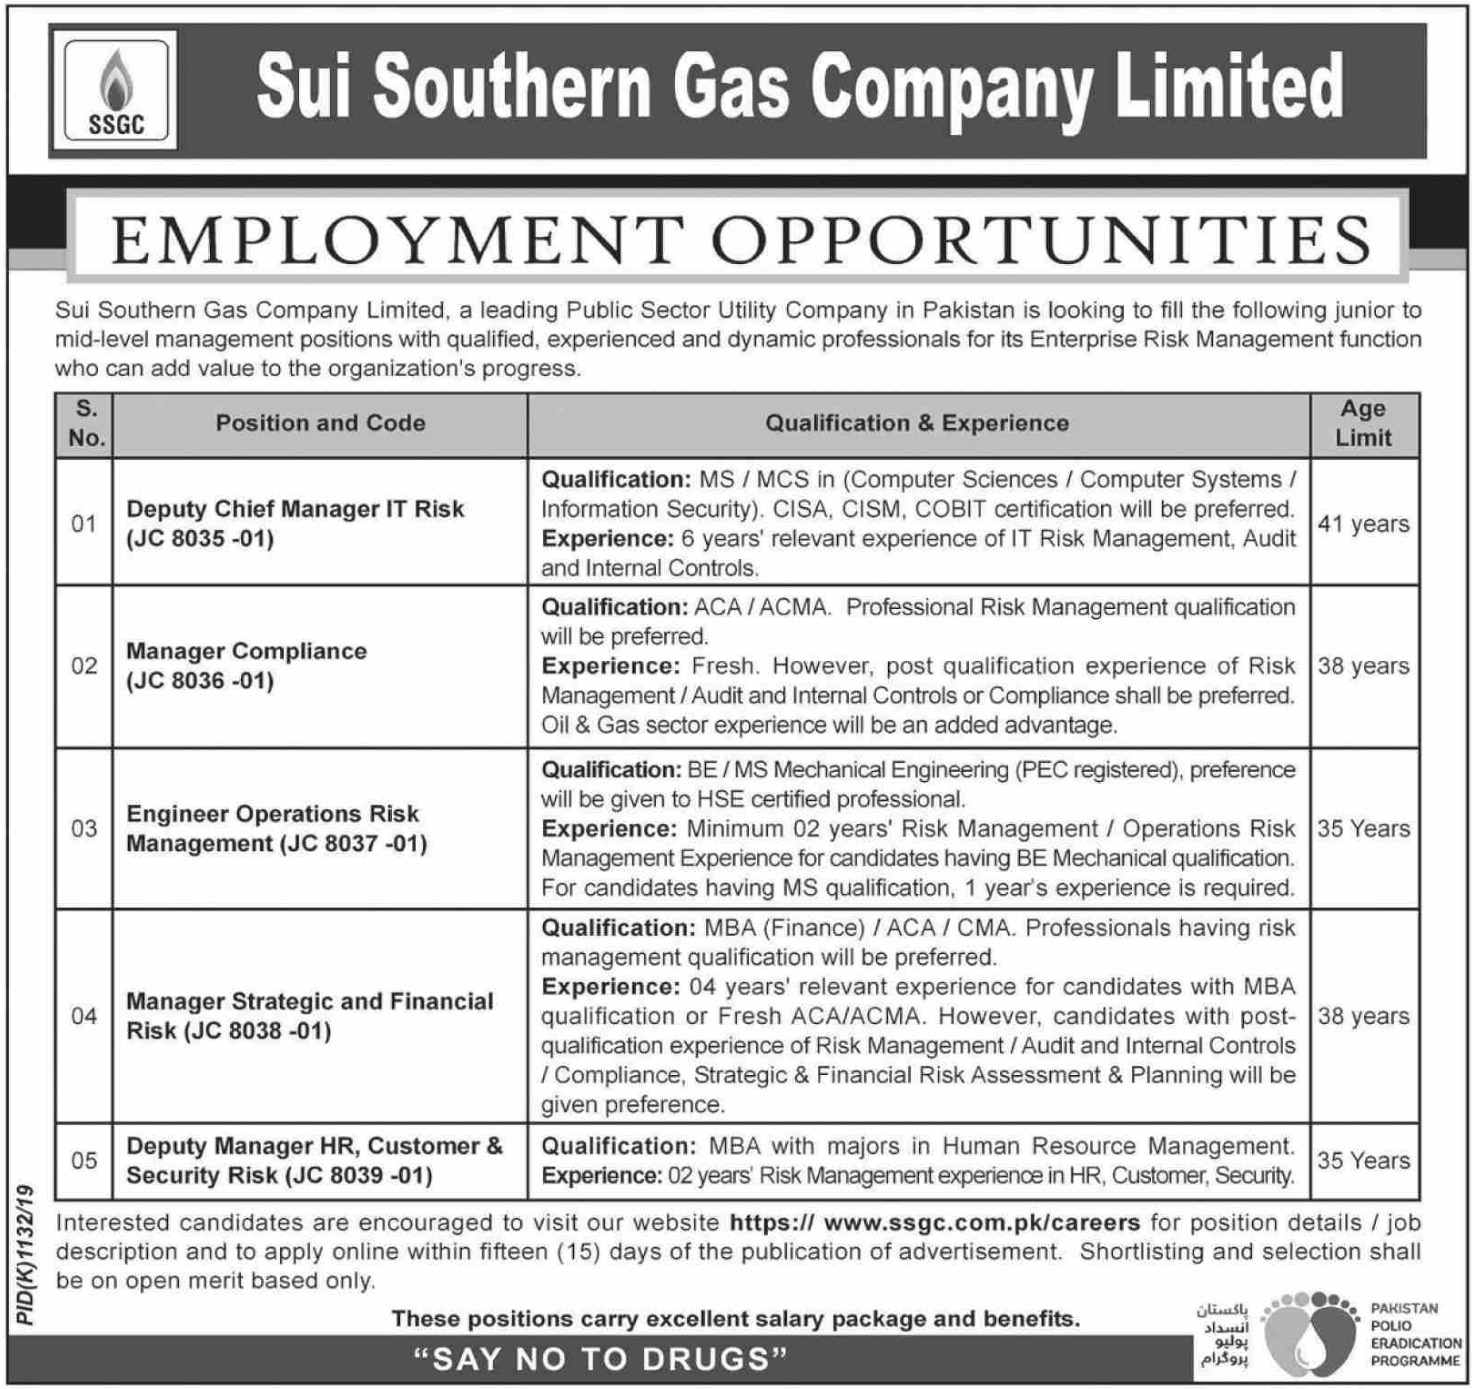 Sui Southern Gas Company Limited jobs at SSGC 2019